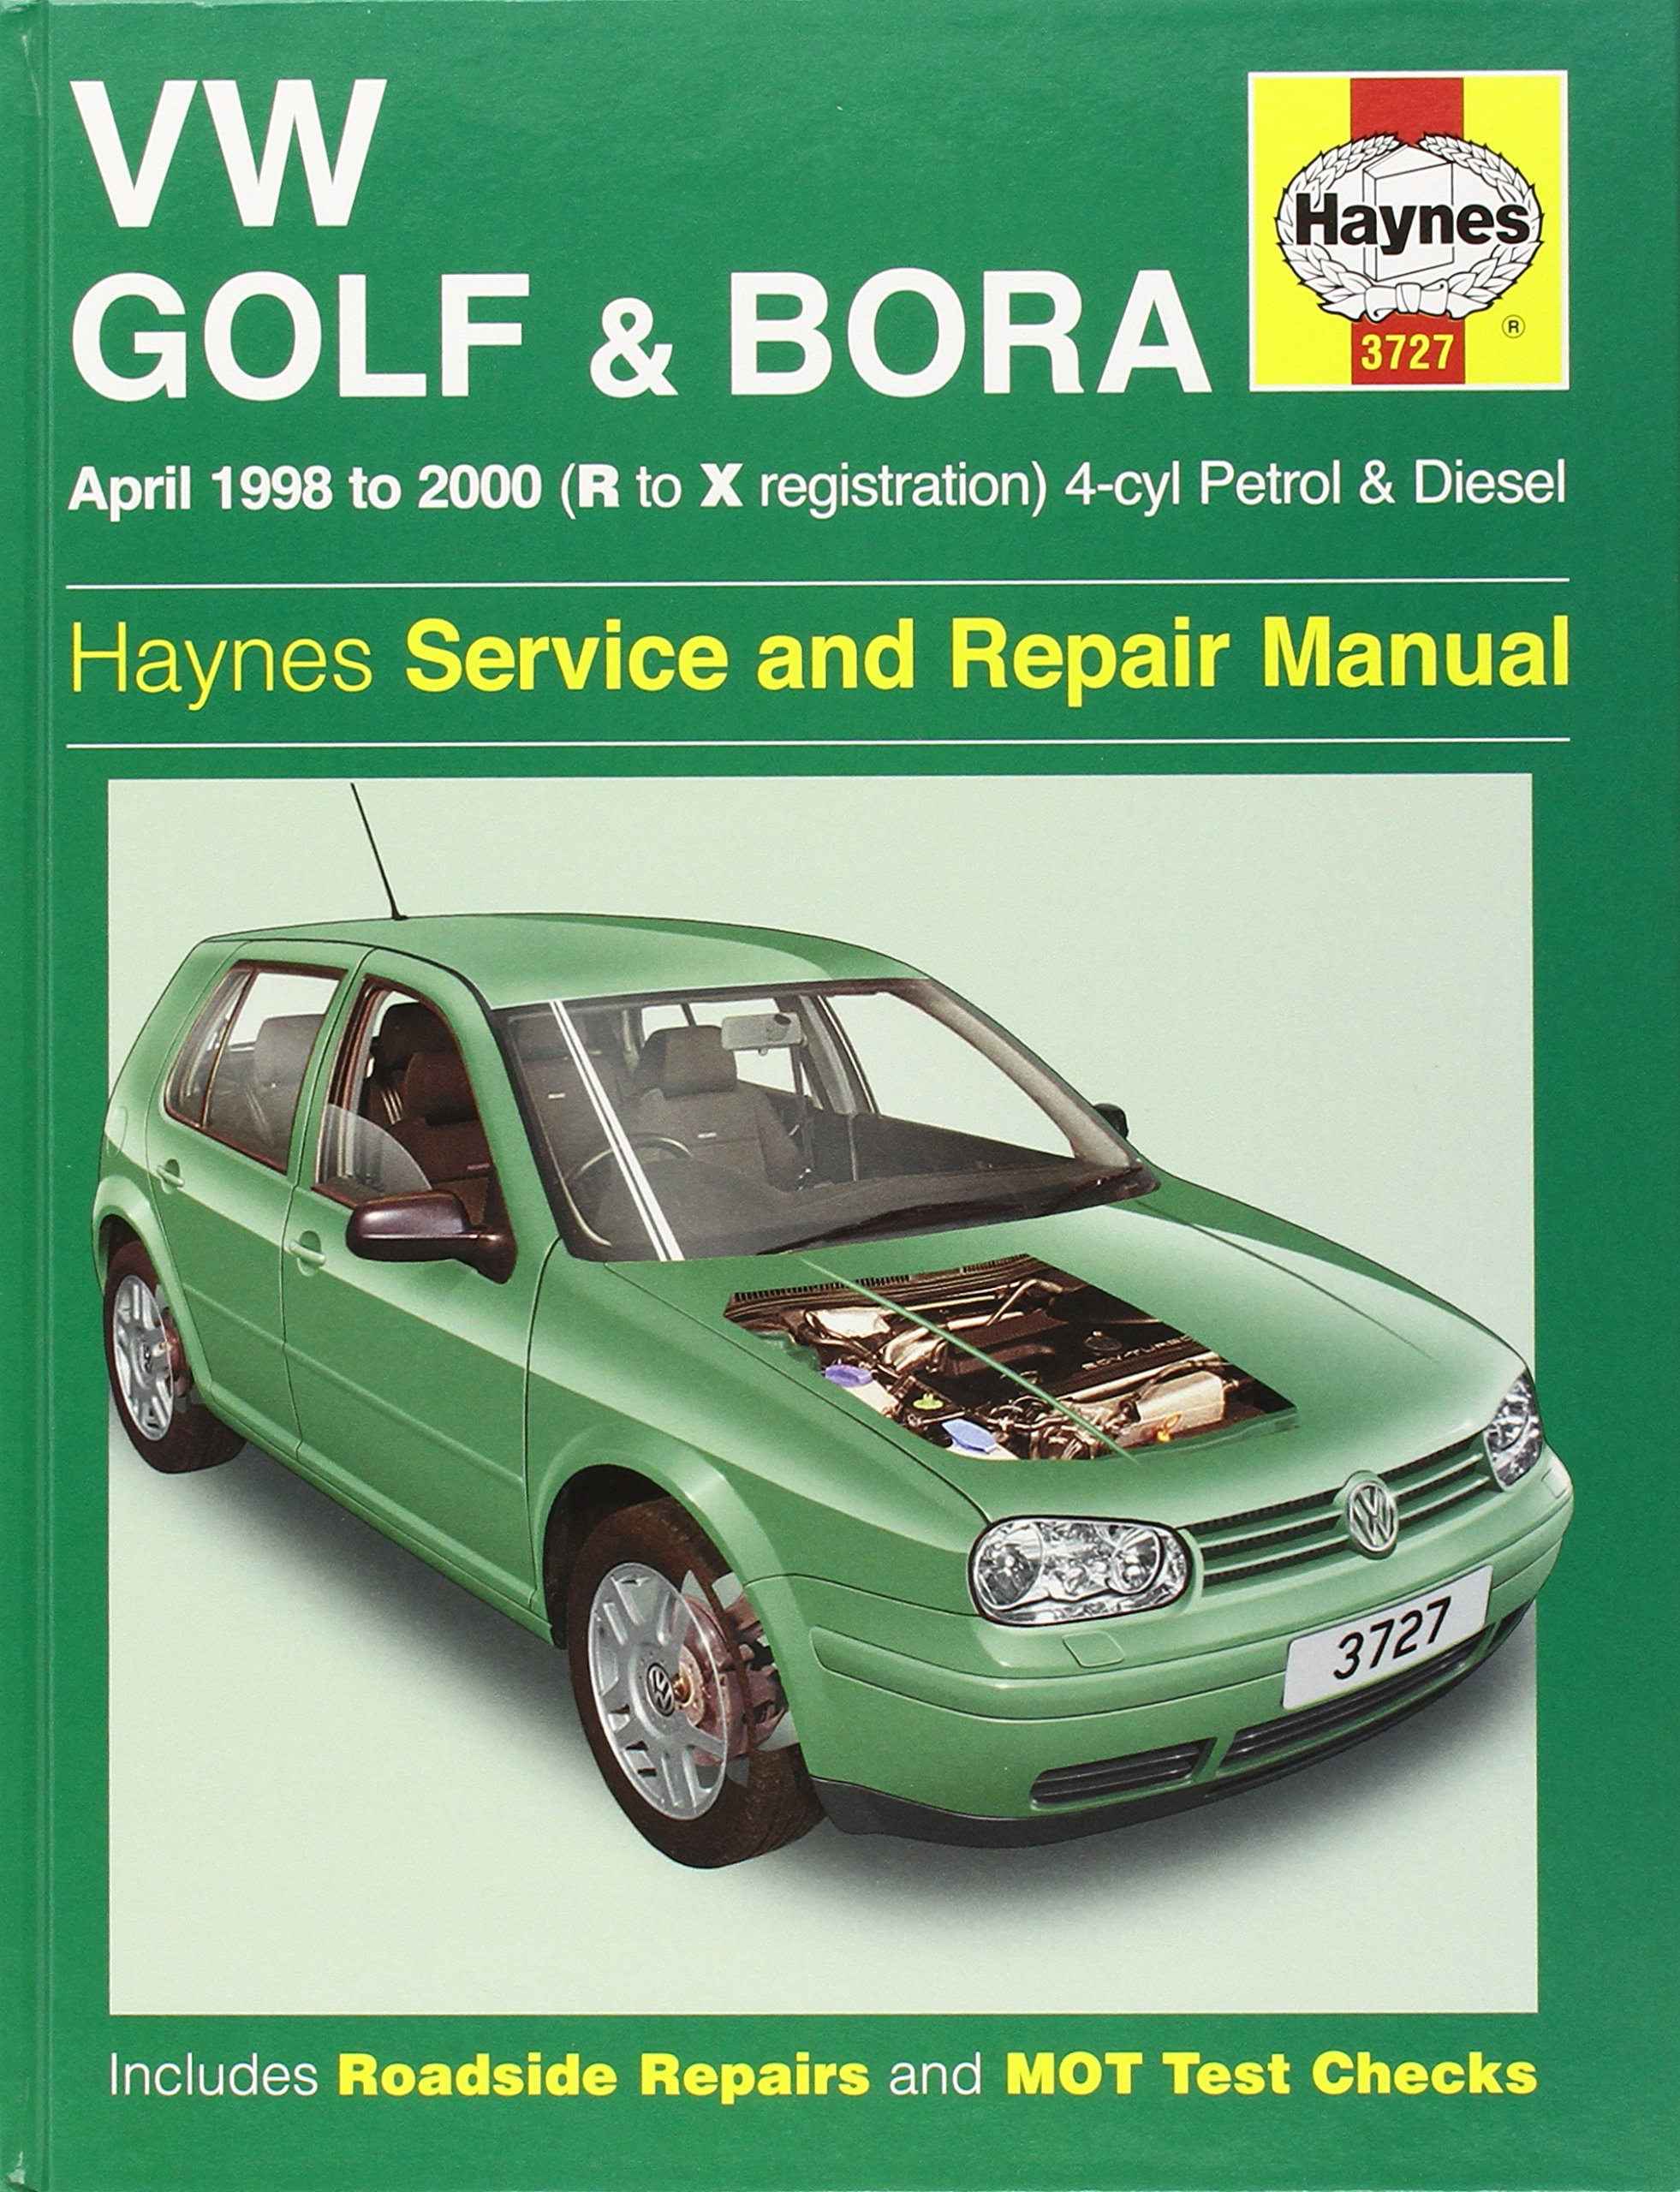 Volkswagen Golf and Bora Petrol and Diesel (1998-2000) Service and Repair  Manual (Service & repair manuals): Amazon.co.uk: Peter T. Gill, R. M. Jex,  ...